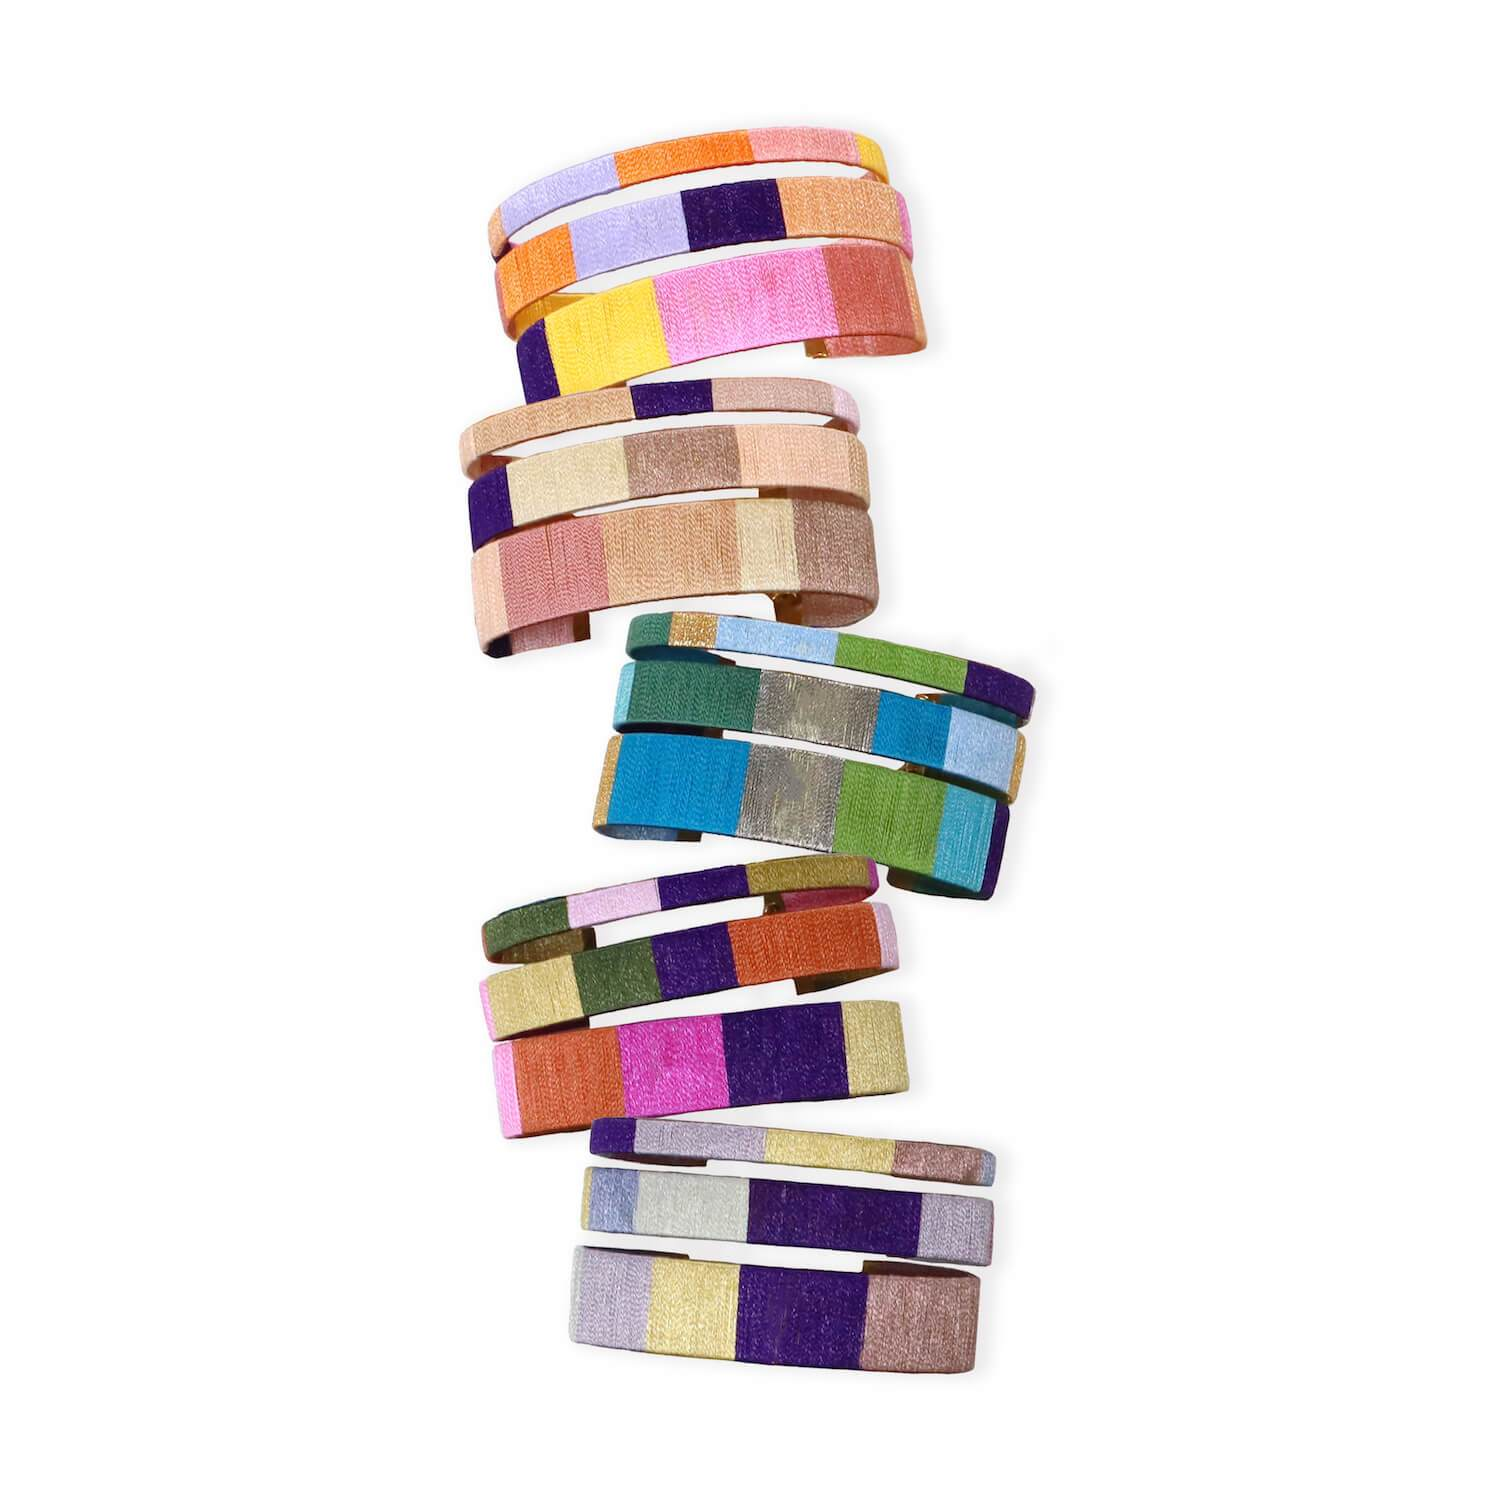 One of our newest obsessions, we love these new cuff bracelets from BuDhaGirl and the thoughtfulness behind them. Handcrafted in India, these delightfully flexible set of 3 cuffs are wrapped in cotton thread in the most beautiful color combinations.